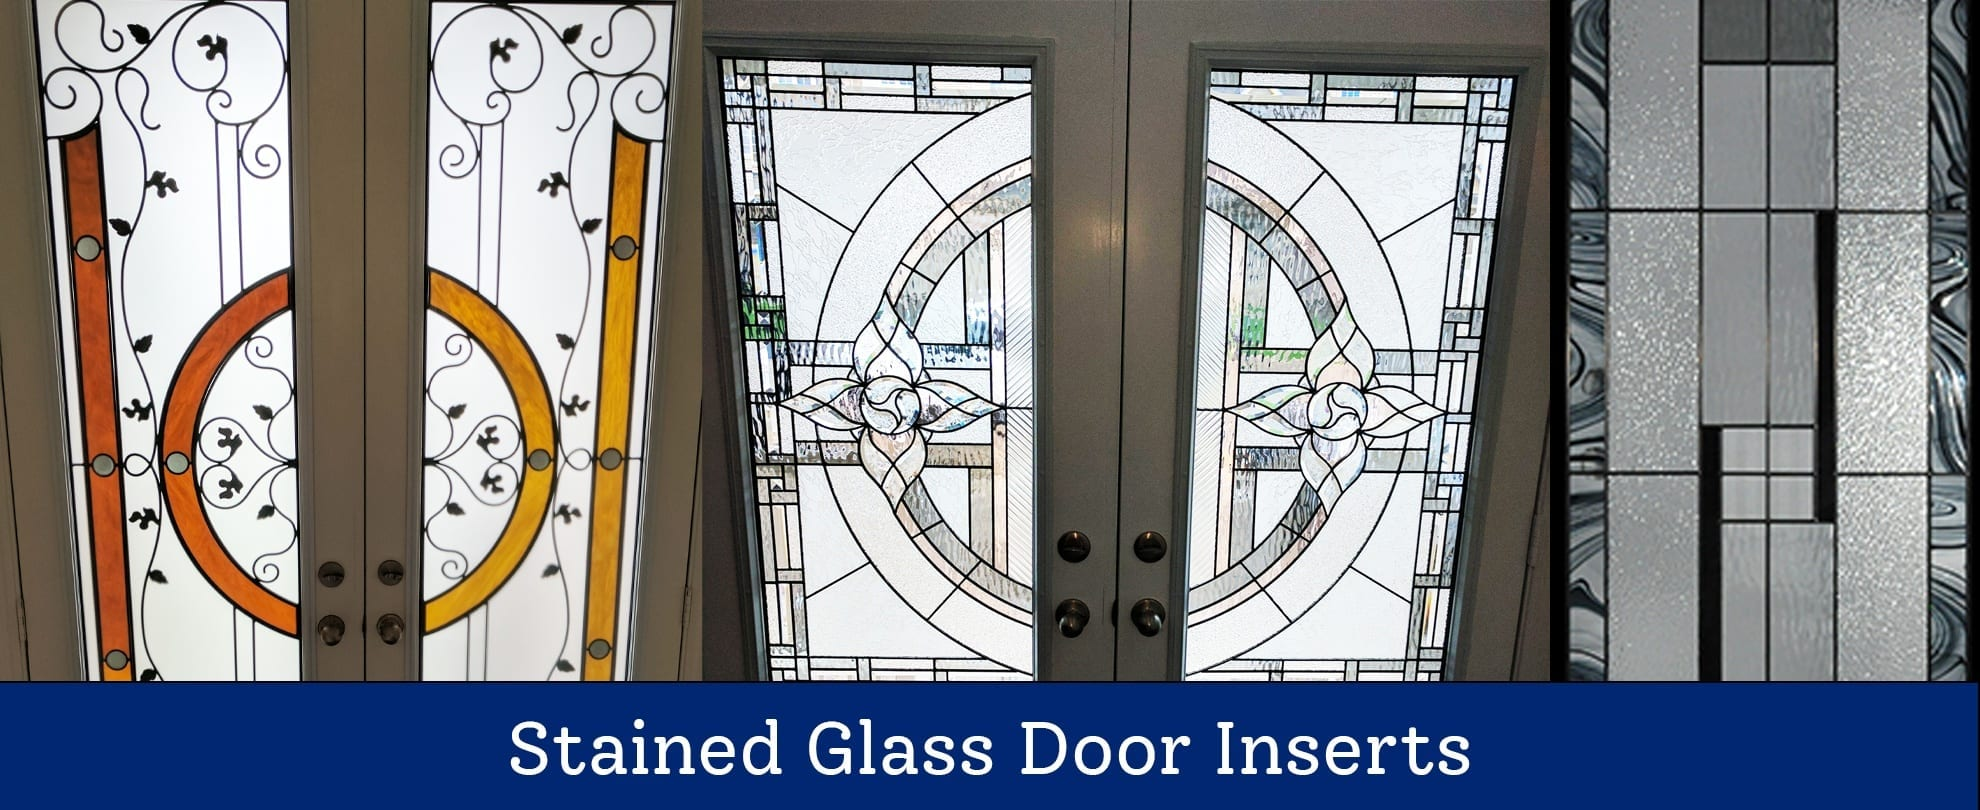 Stained Glass Door Inserts